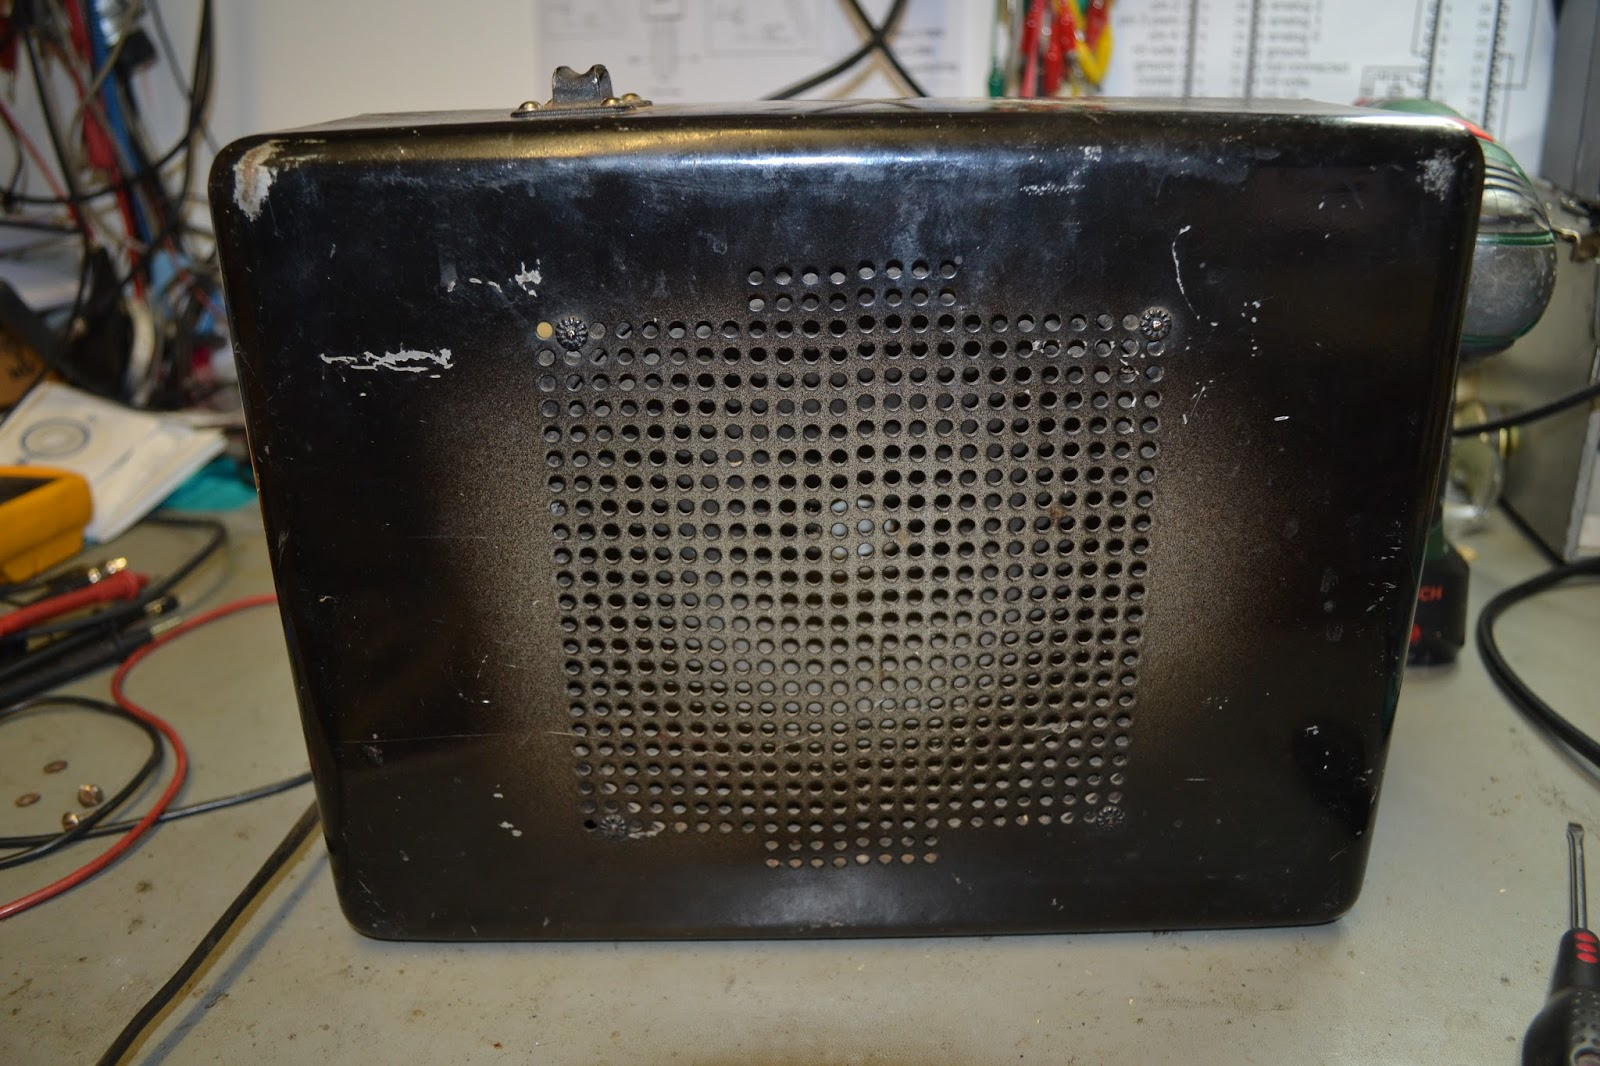 Doz Blog Rickenbacker Rickenbacher Model 59 Lap Steel Guitar Amp Amplifier Timer Heres A Delightful Old Norman Sorry Couldnt Resist Anyway He Brought An Over For Look